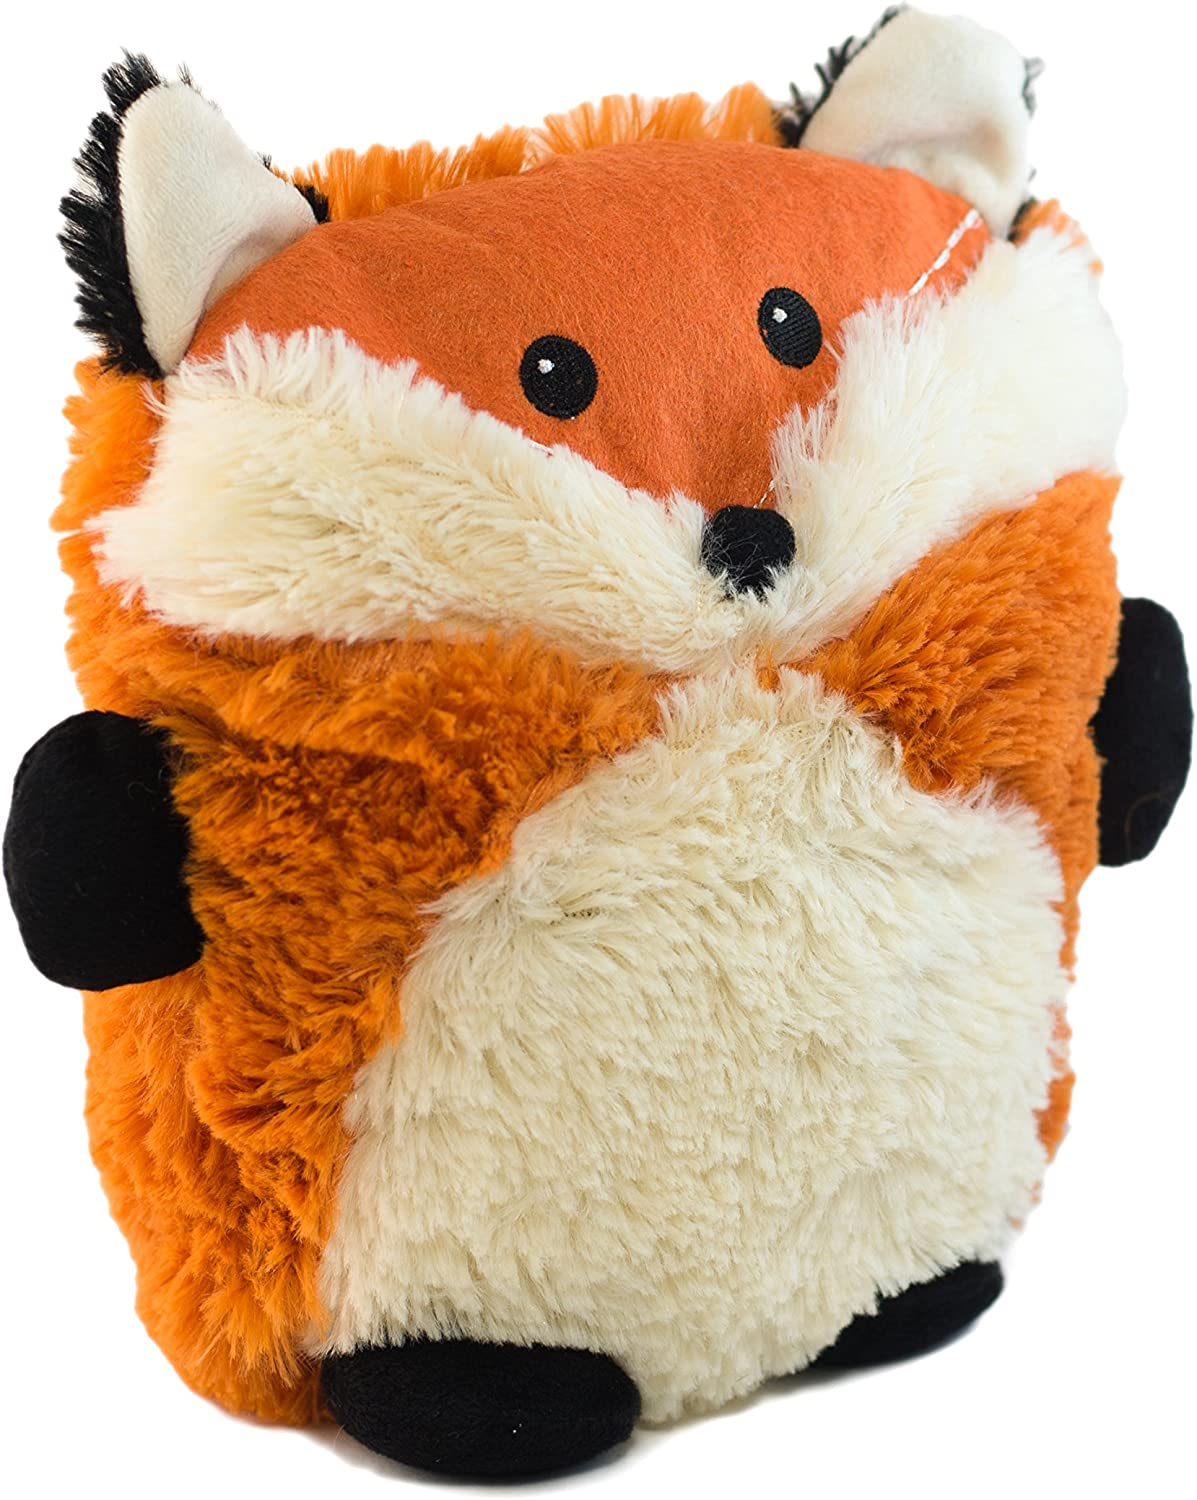 Warmies Microwavable French Lavender Scented Plush Hooty Fox